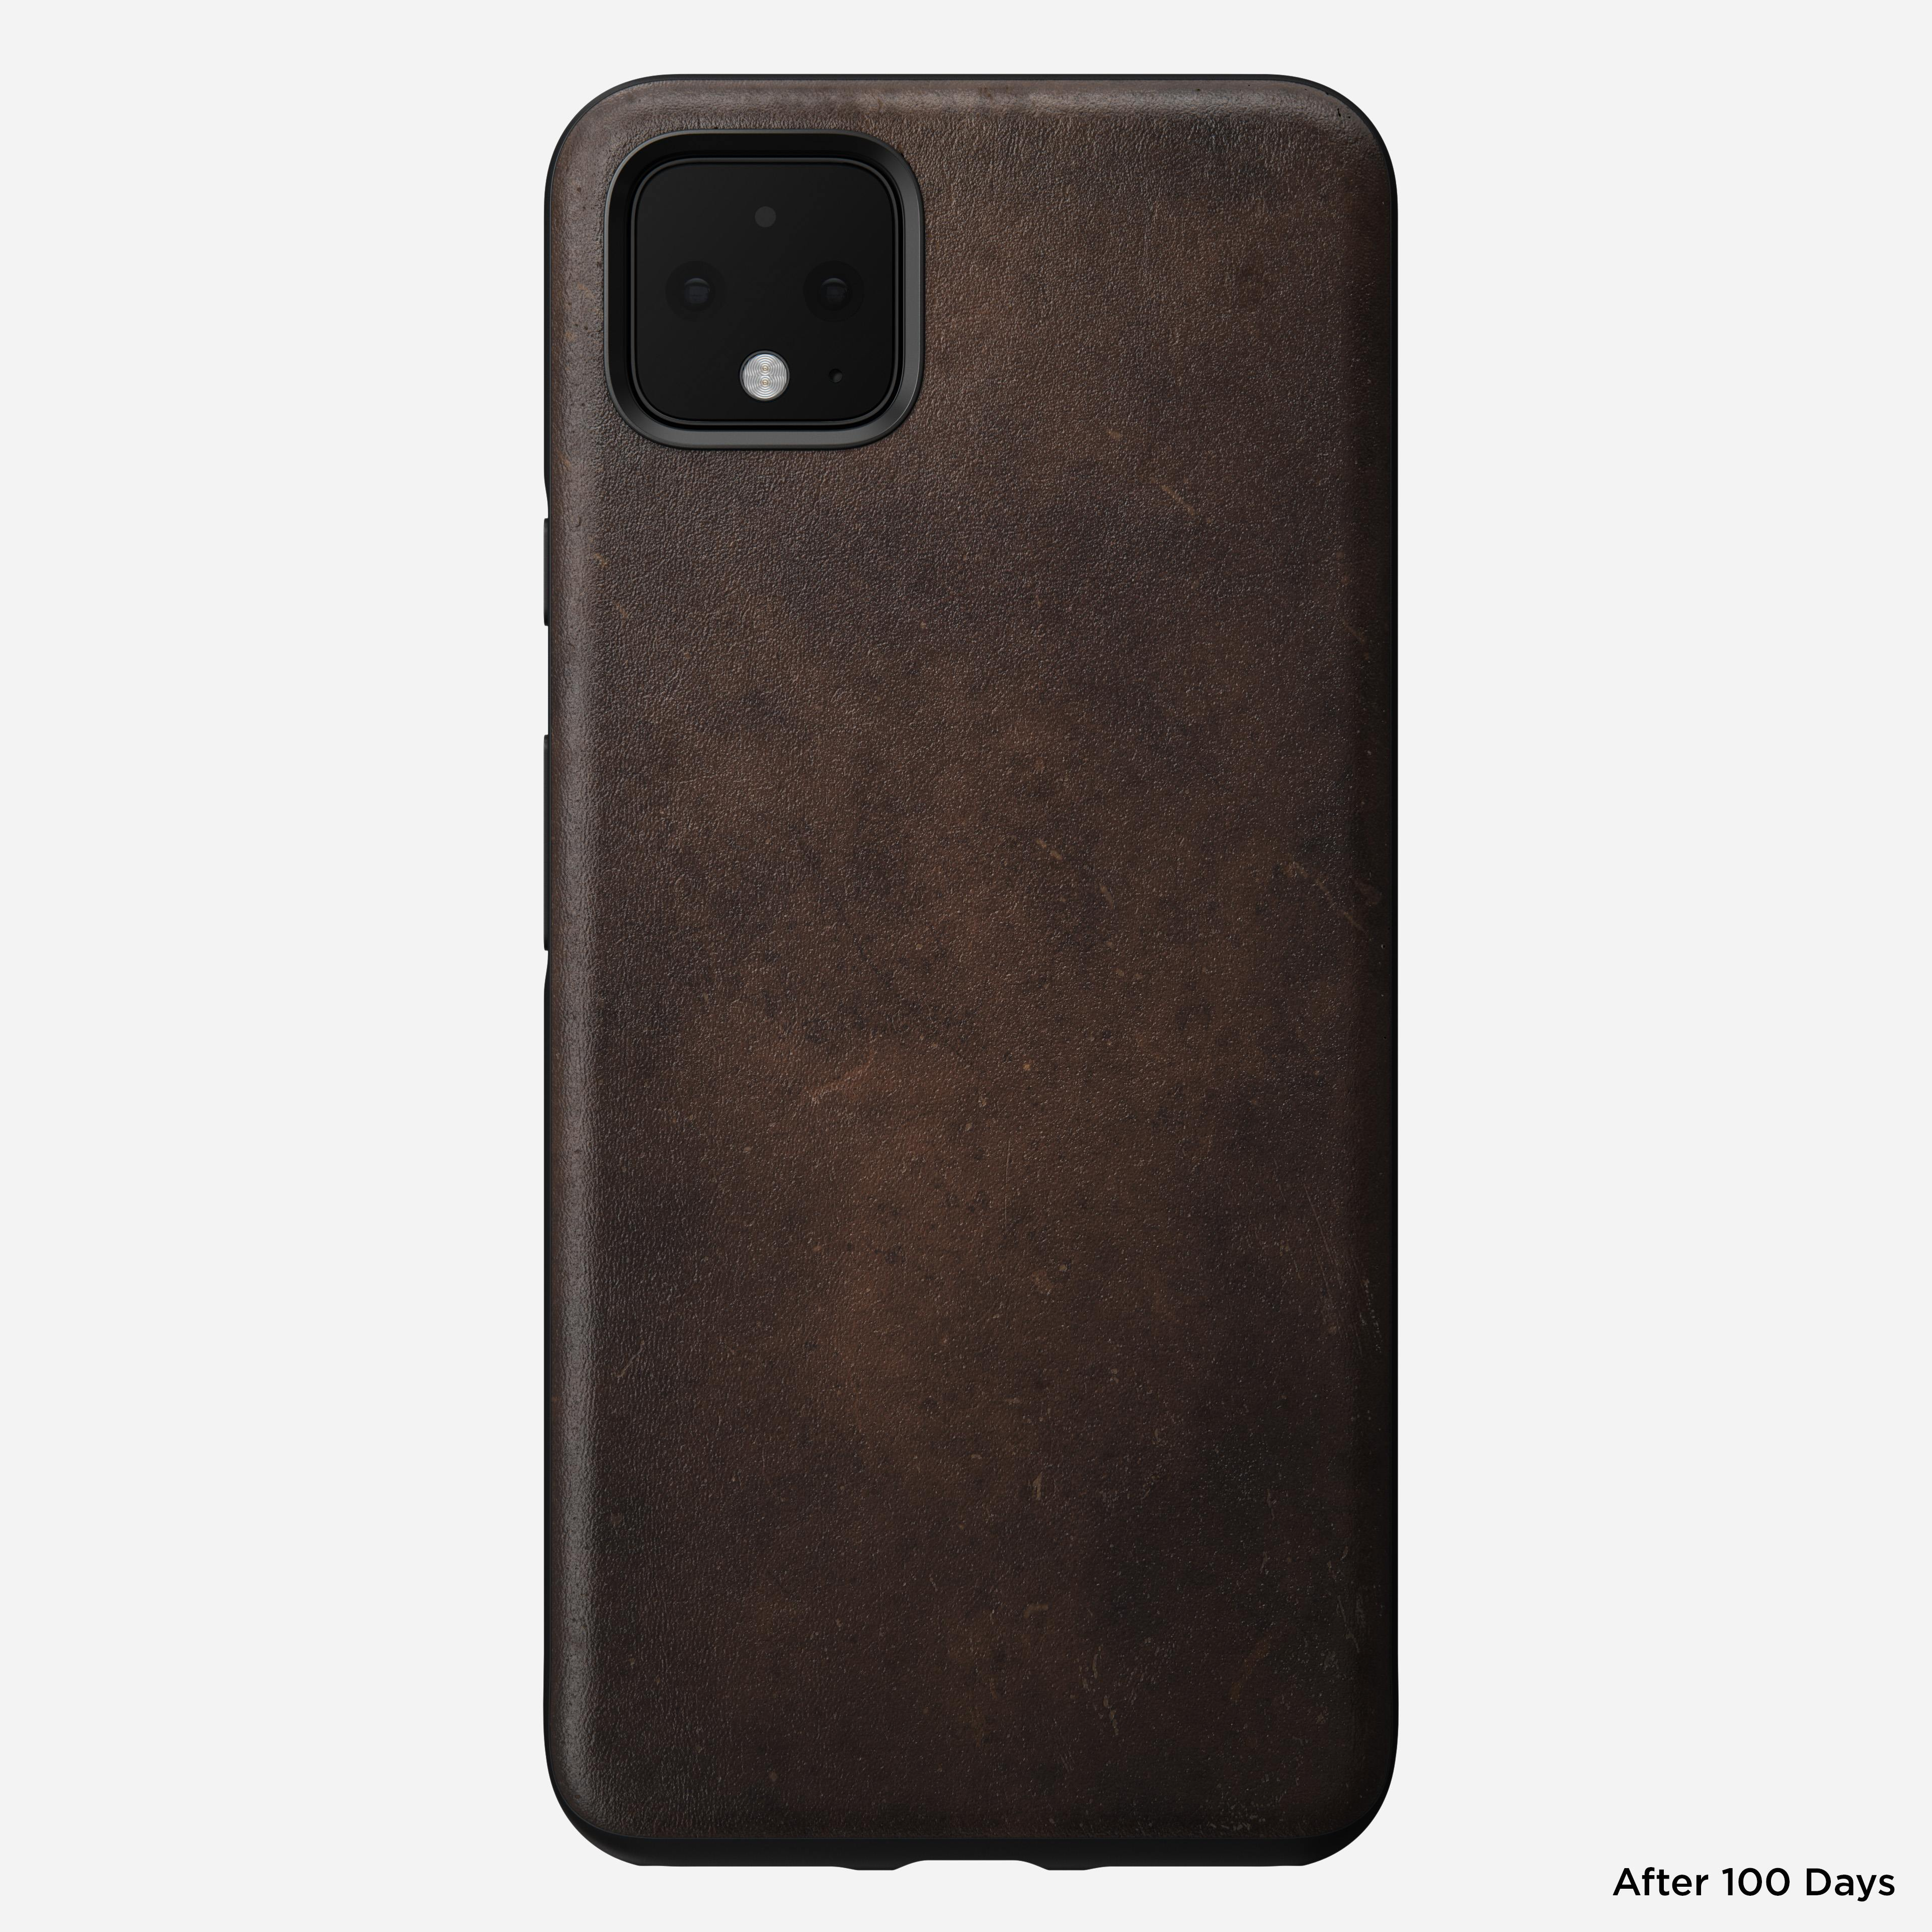 Rugged case rustic brown pixel 4 xl